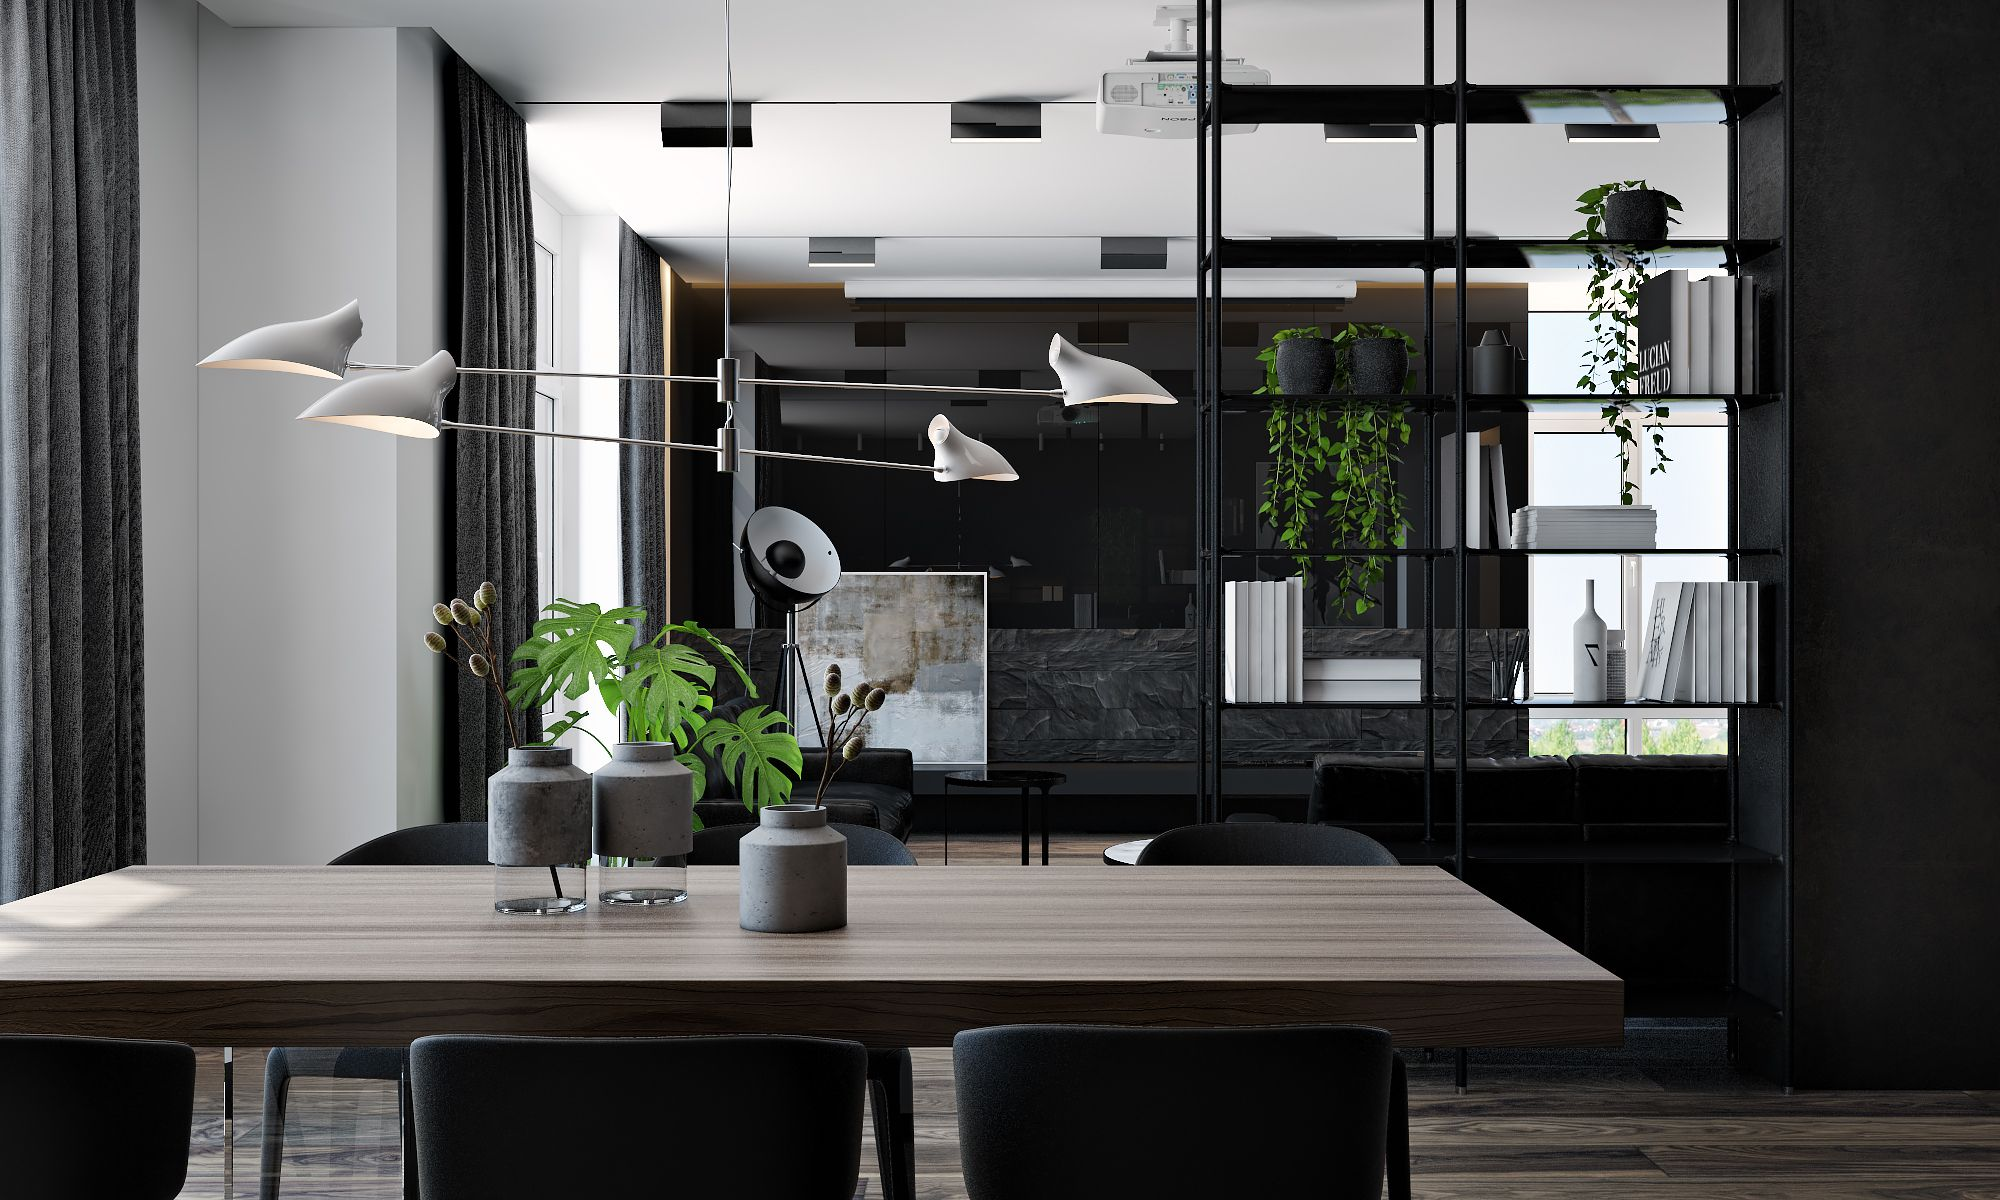 Captivating Although More Common In Small Studio Apartments, Even Sprawling Interiors  Can Benefit From The Sense Of Freedom An Open Plan Layout Allows.